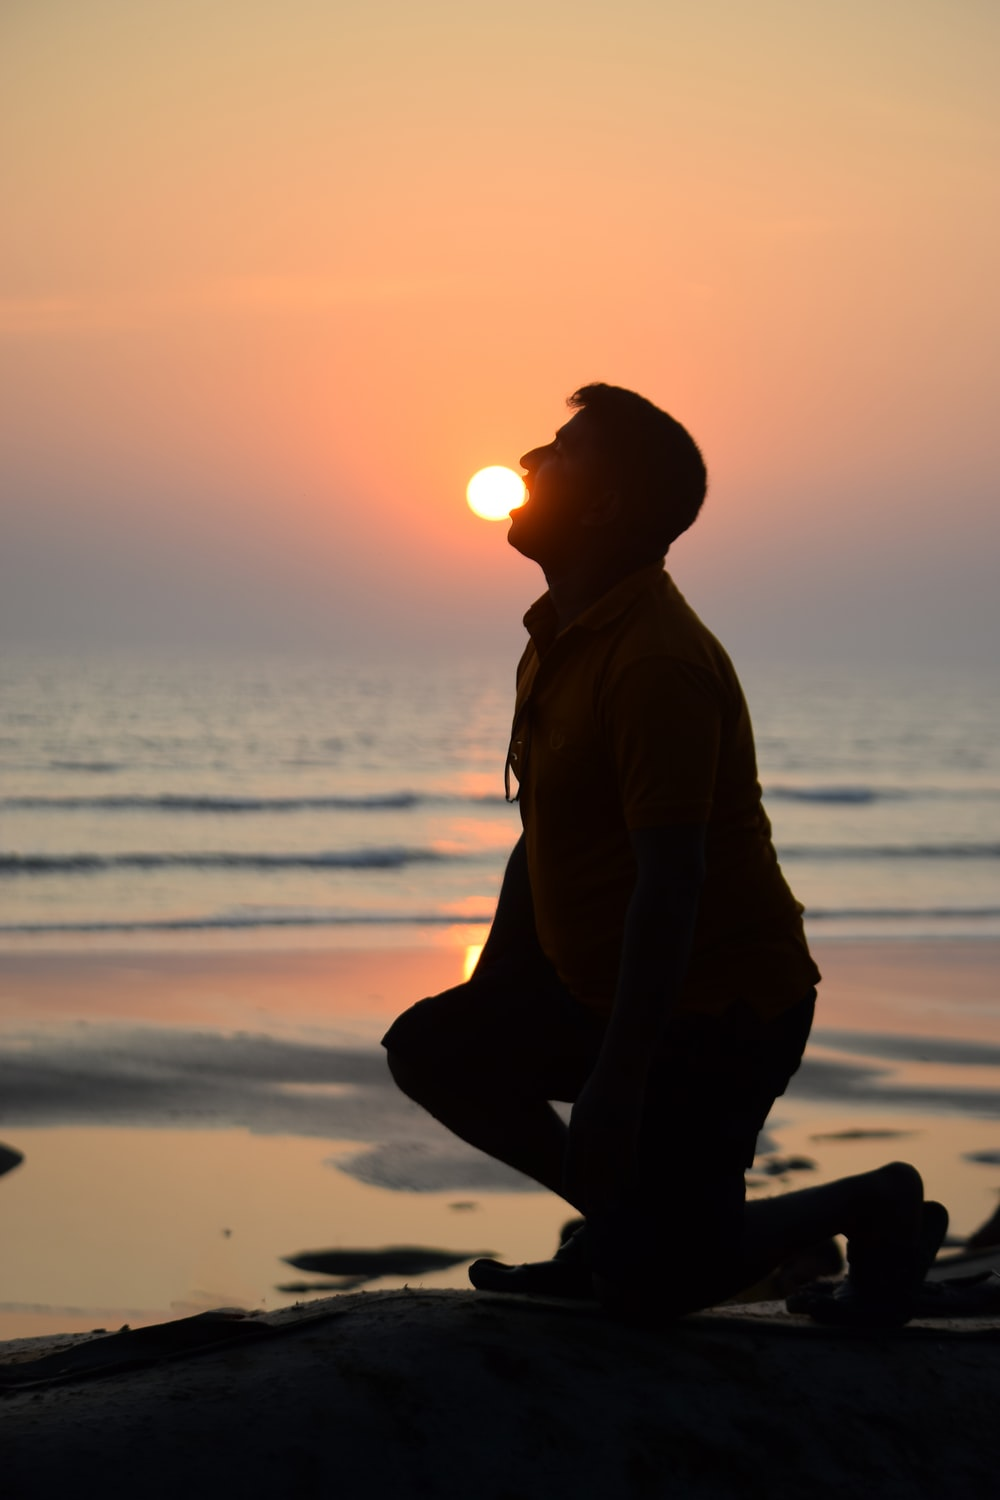 silhouette of man sitting on beach during sunset